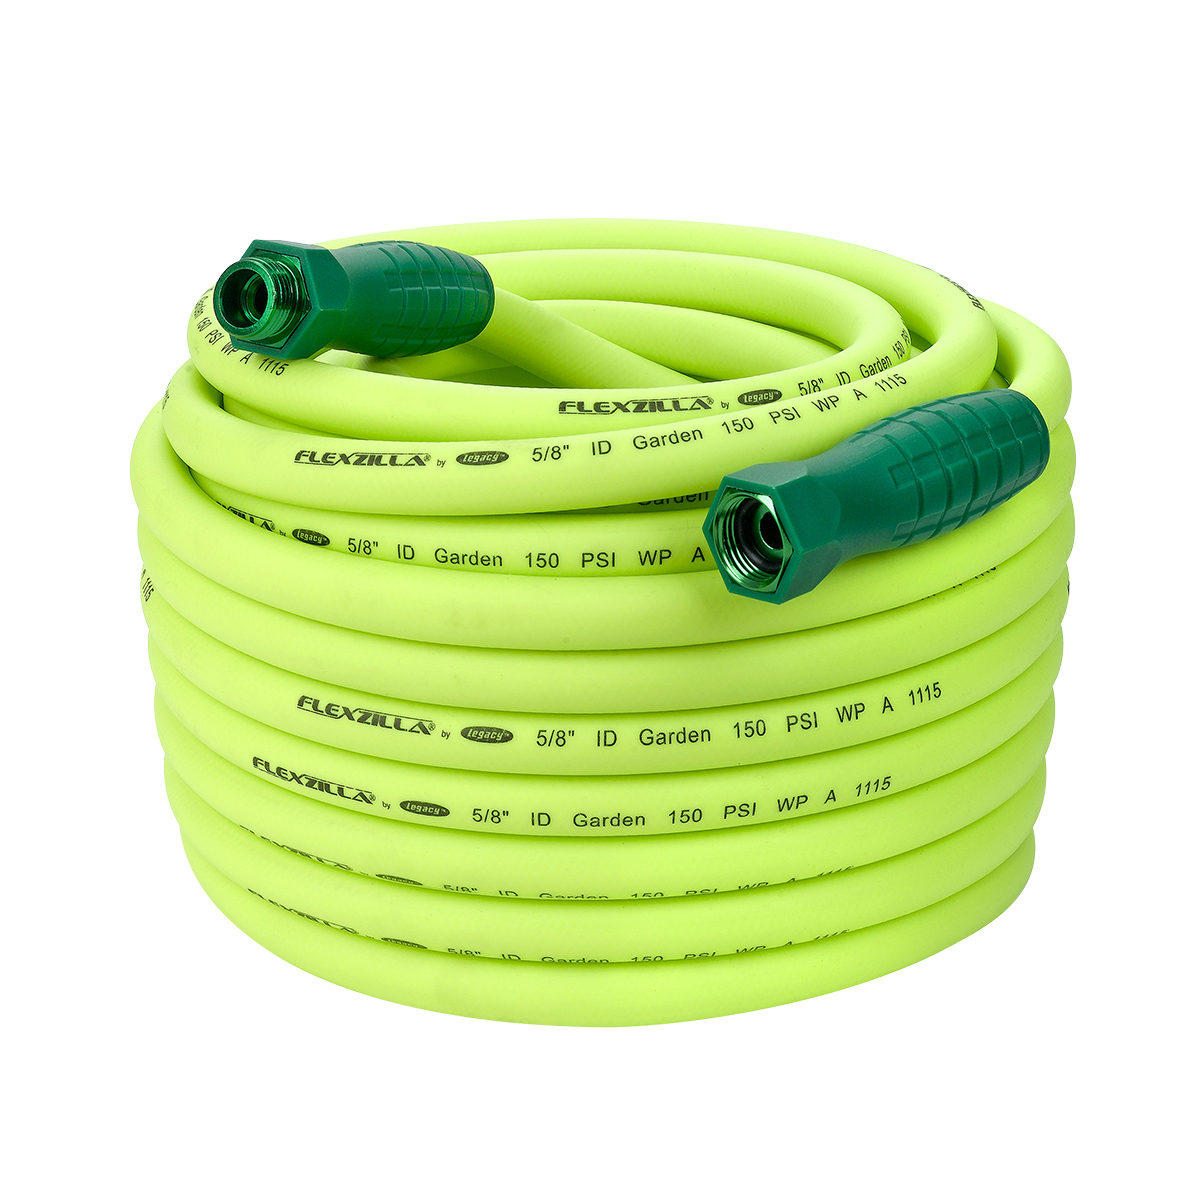 Flexzilla SwivelGrip Drinking Water Safe Garden Hose with Extreme All-Weather Flexibility by Legacy Manufacturing